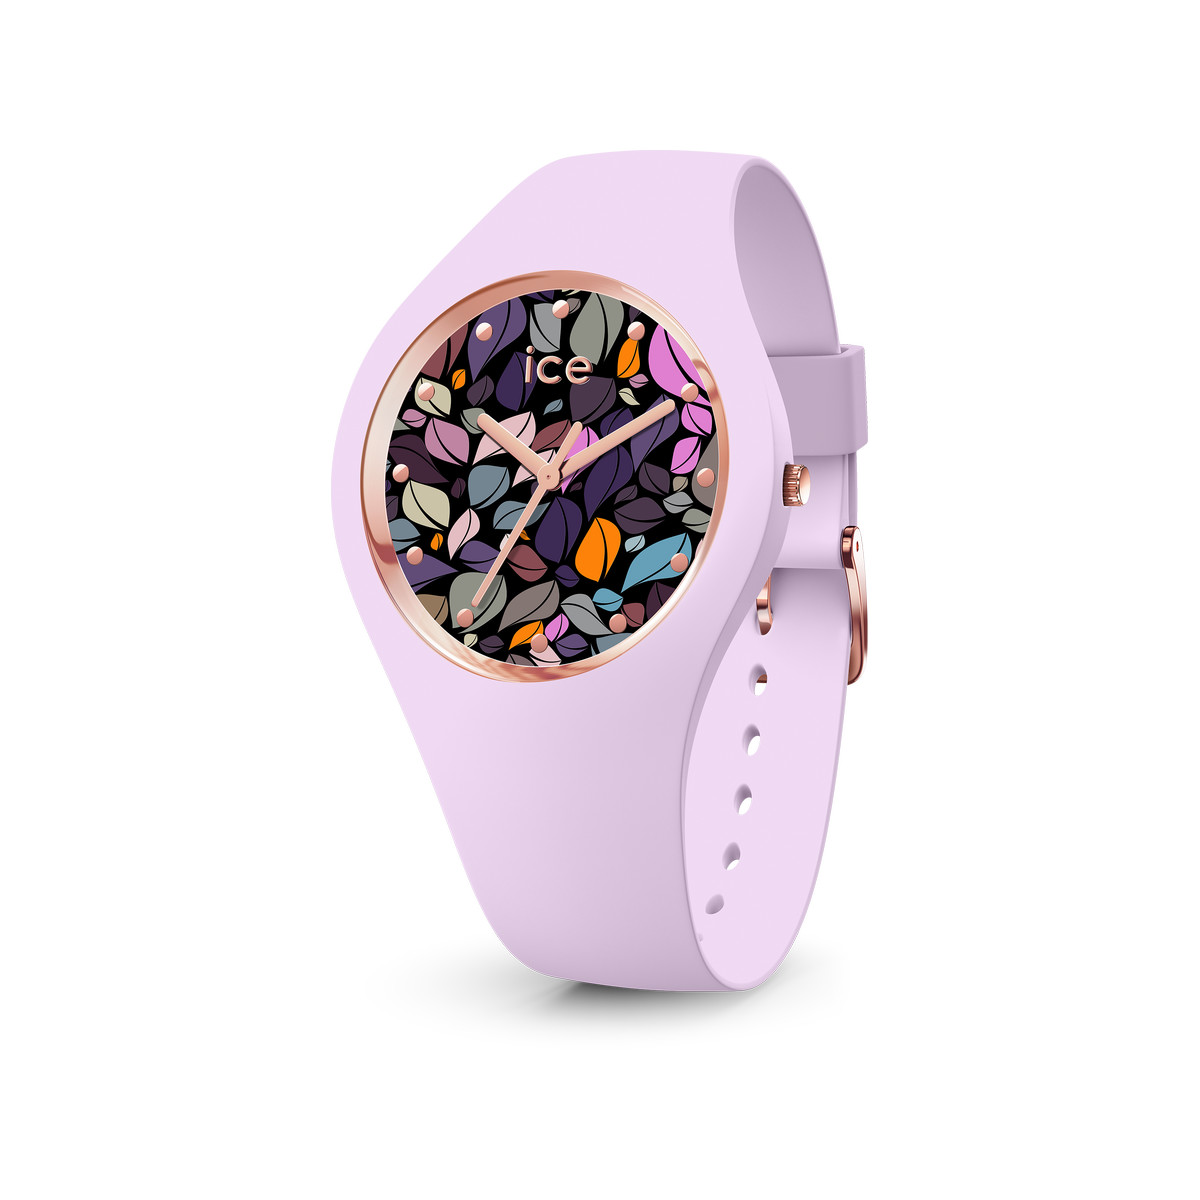 Montre ICE WATCH ICE flower Bracelet Silicone